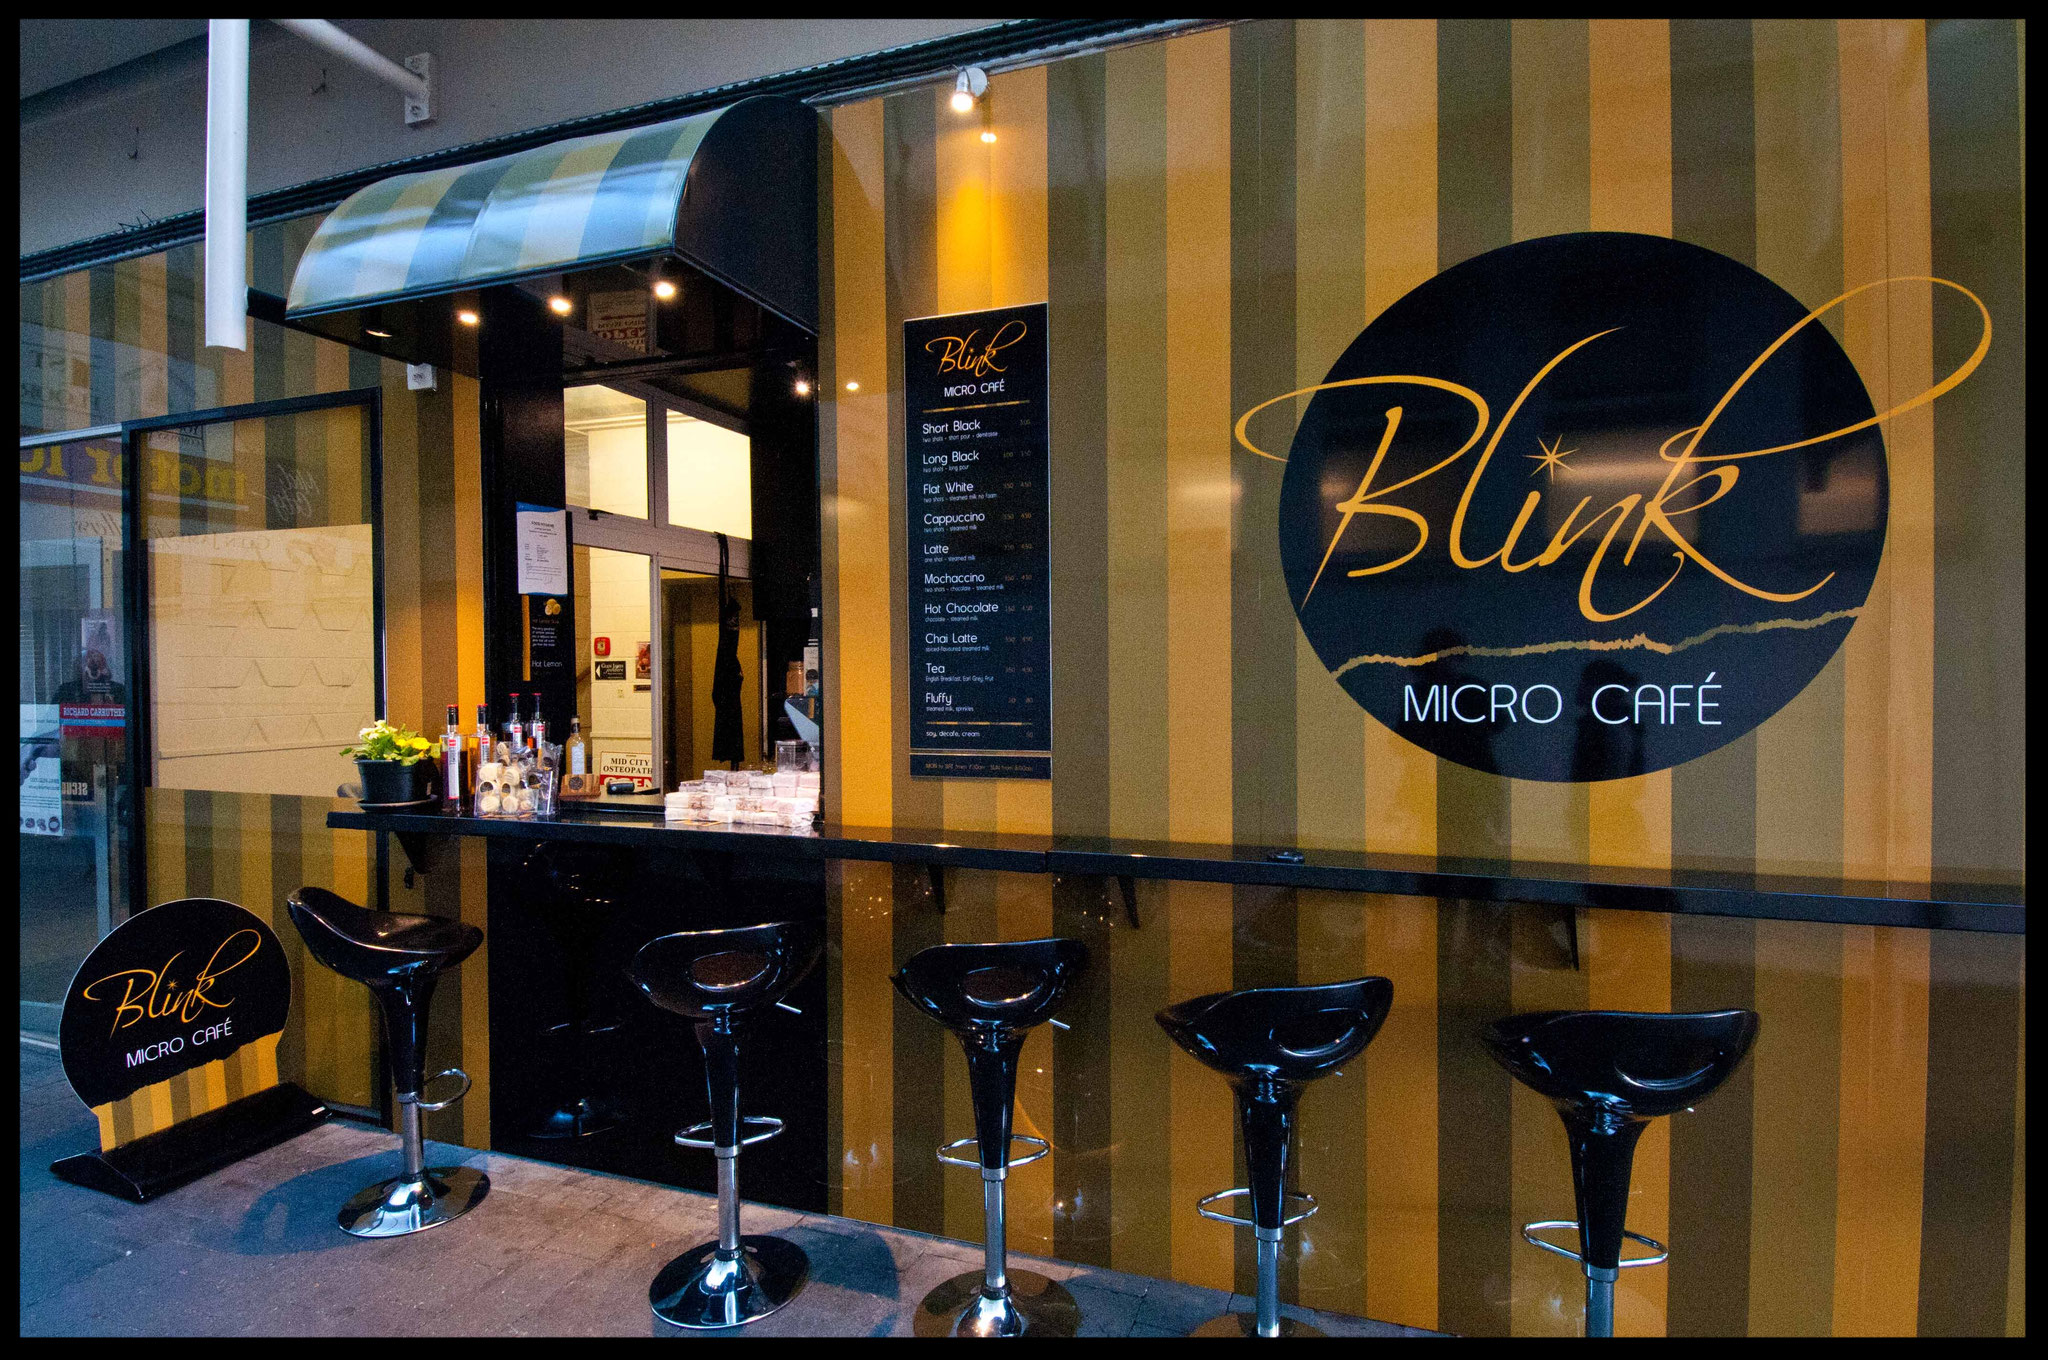 Blink Cafe Awning, Nelson CBD